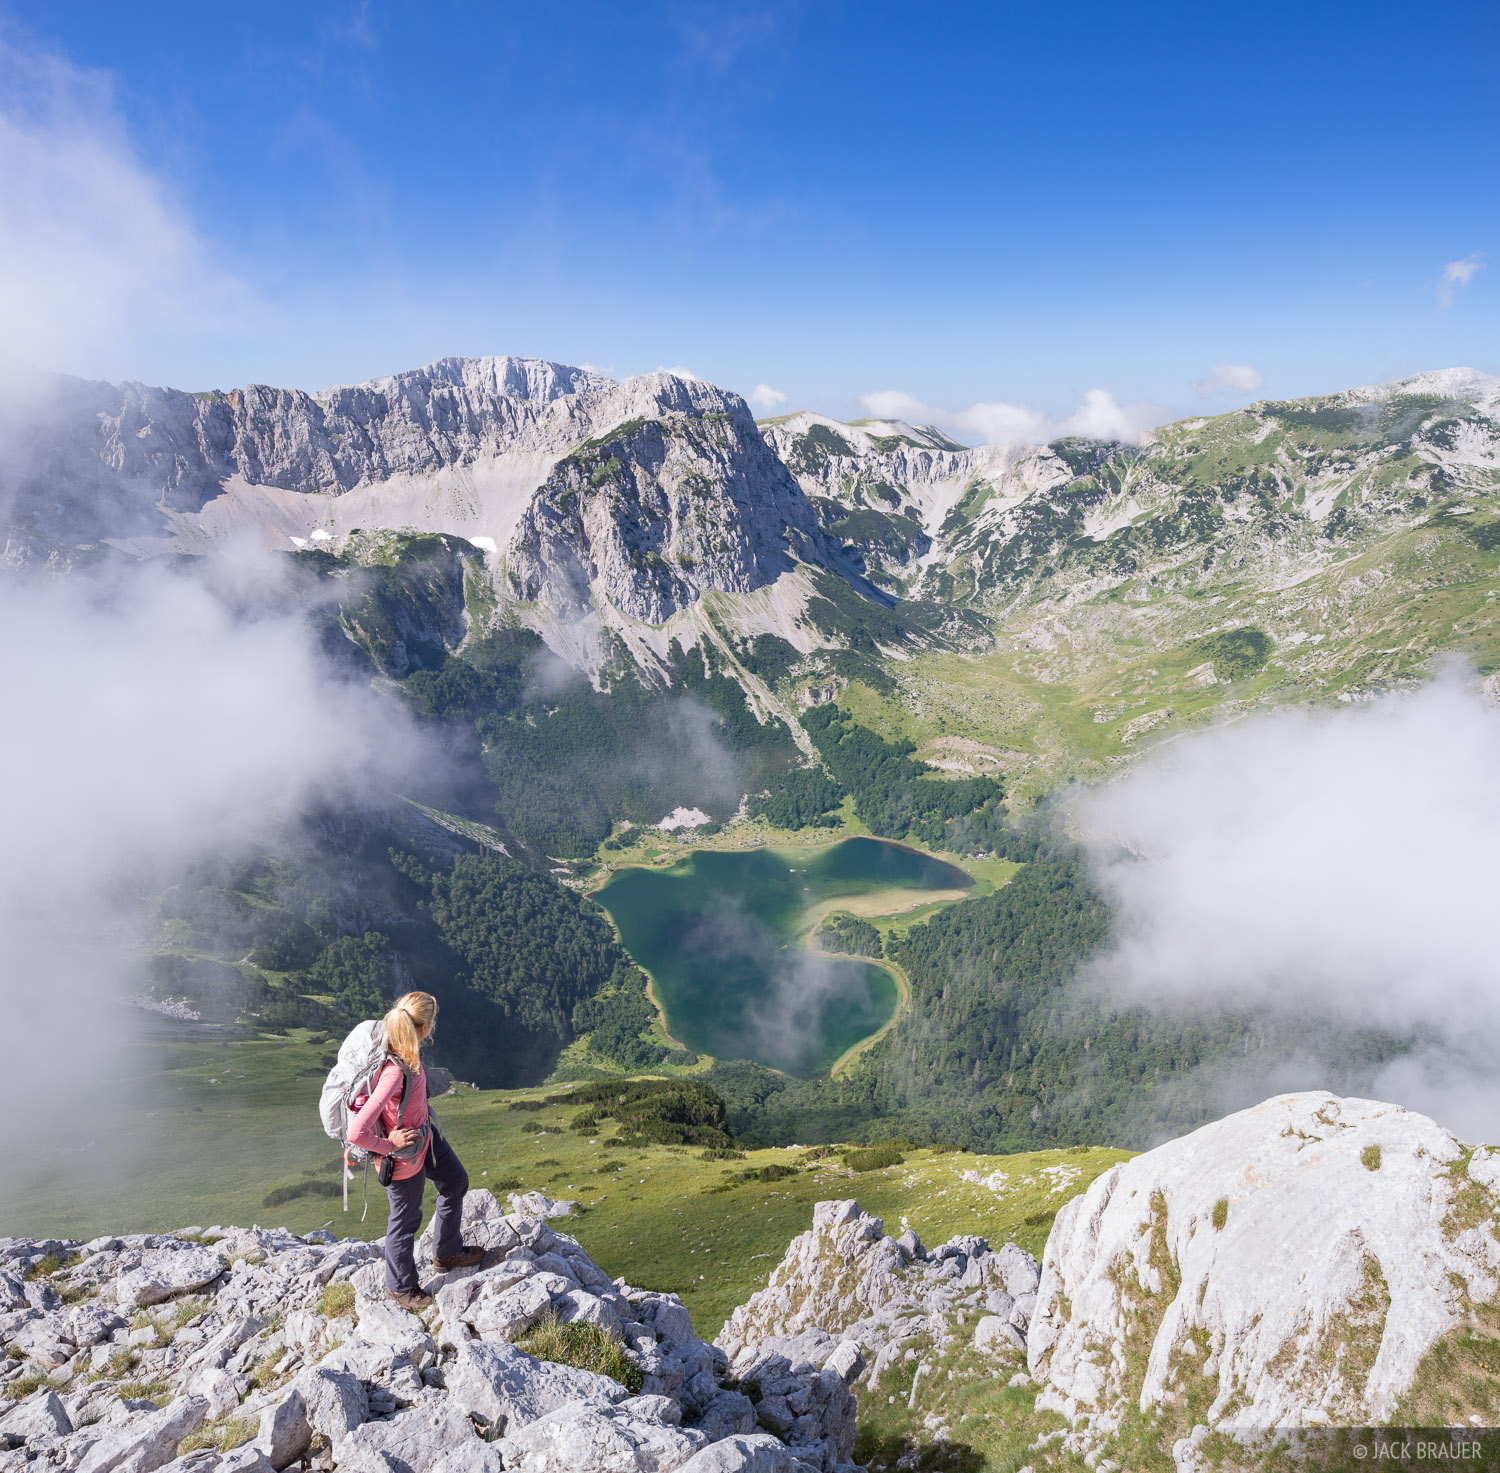 A hiker enjoys the view above Trnovacko Jezero, in Montenegro not far from the border of Bosnia.